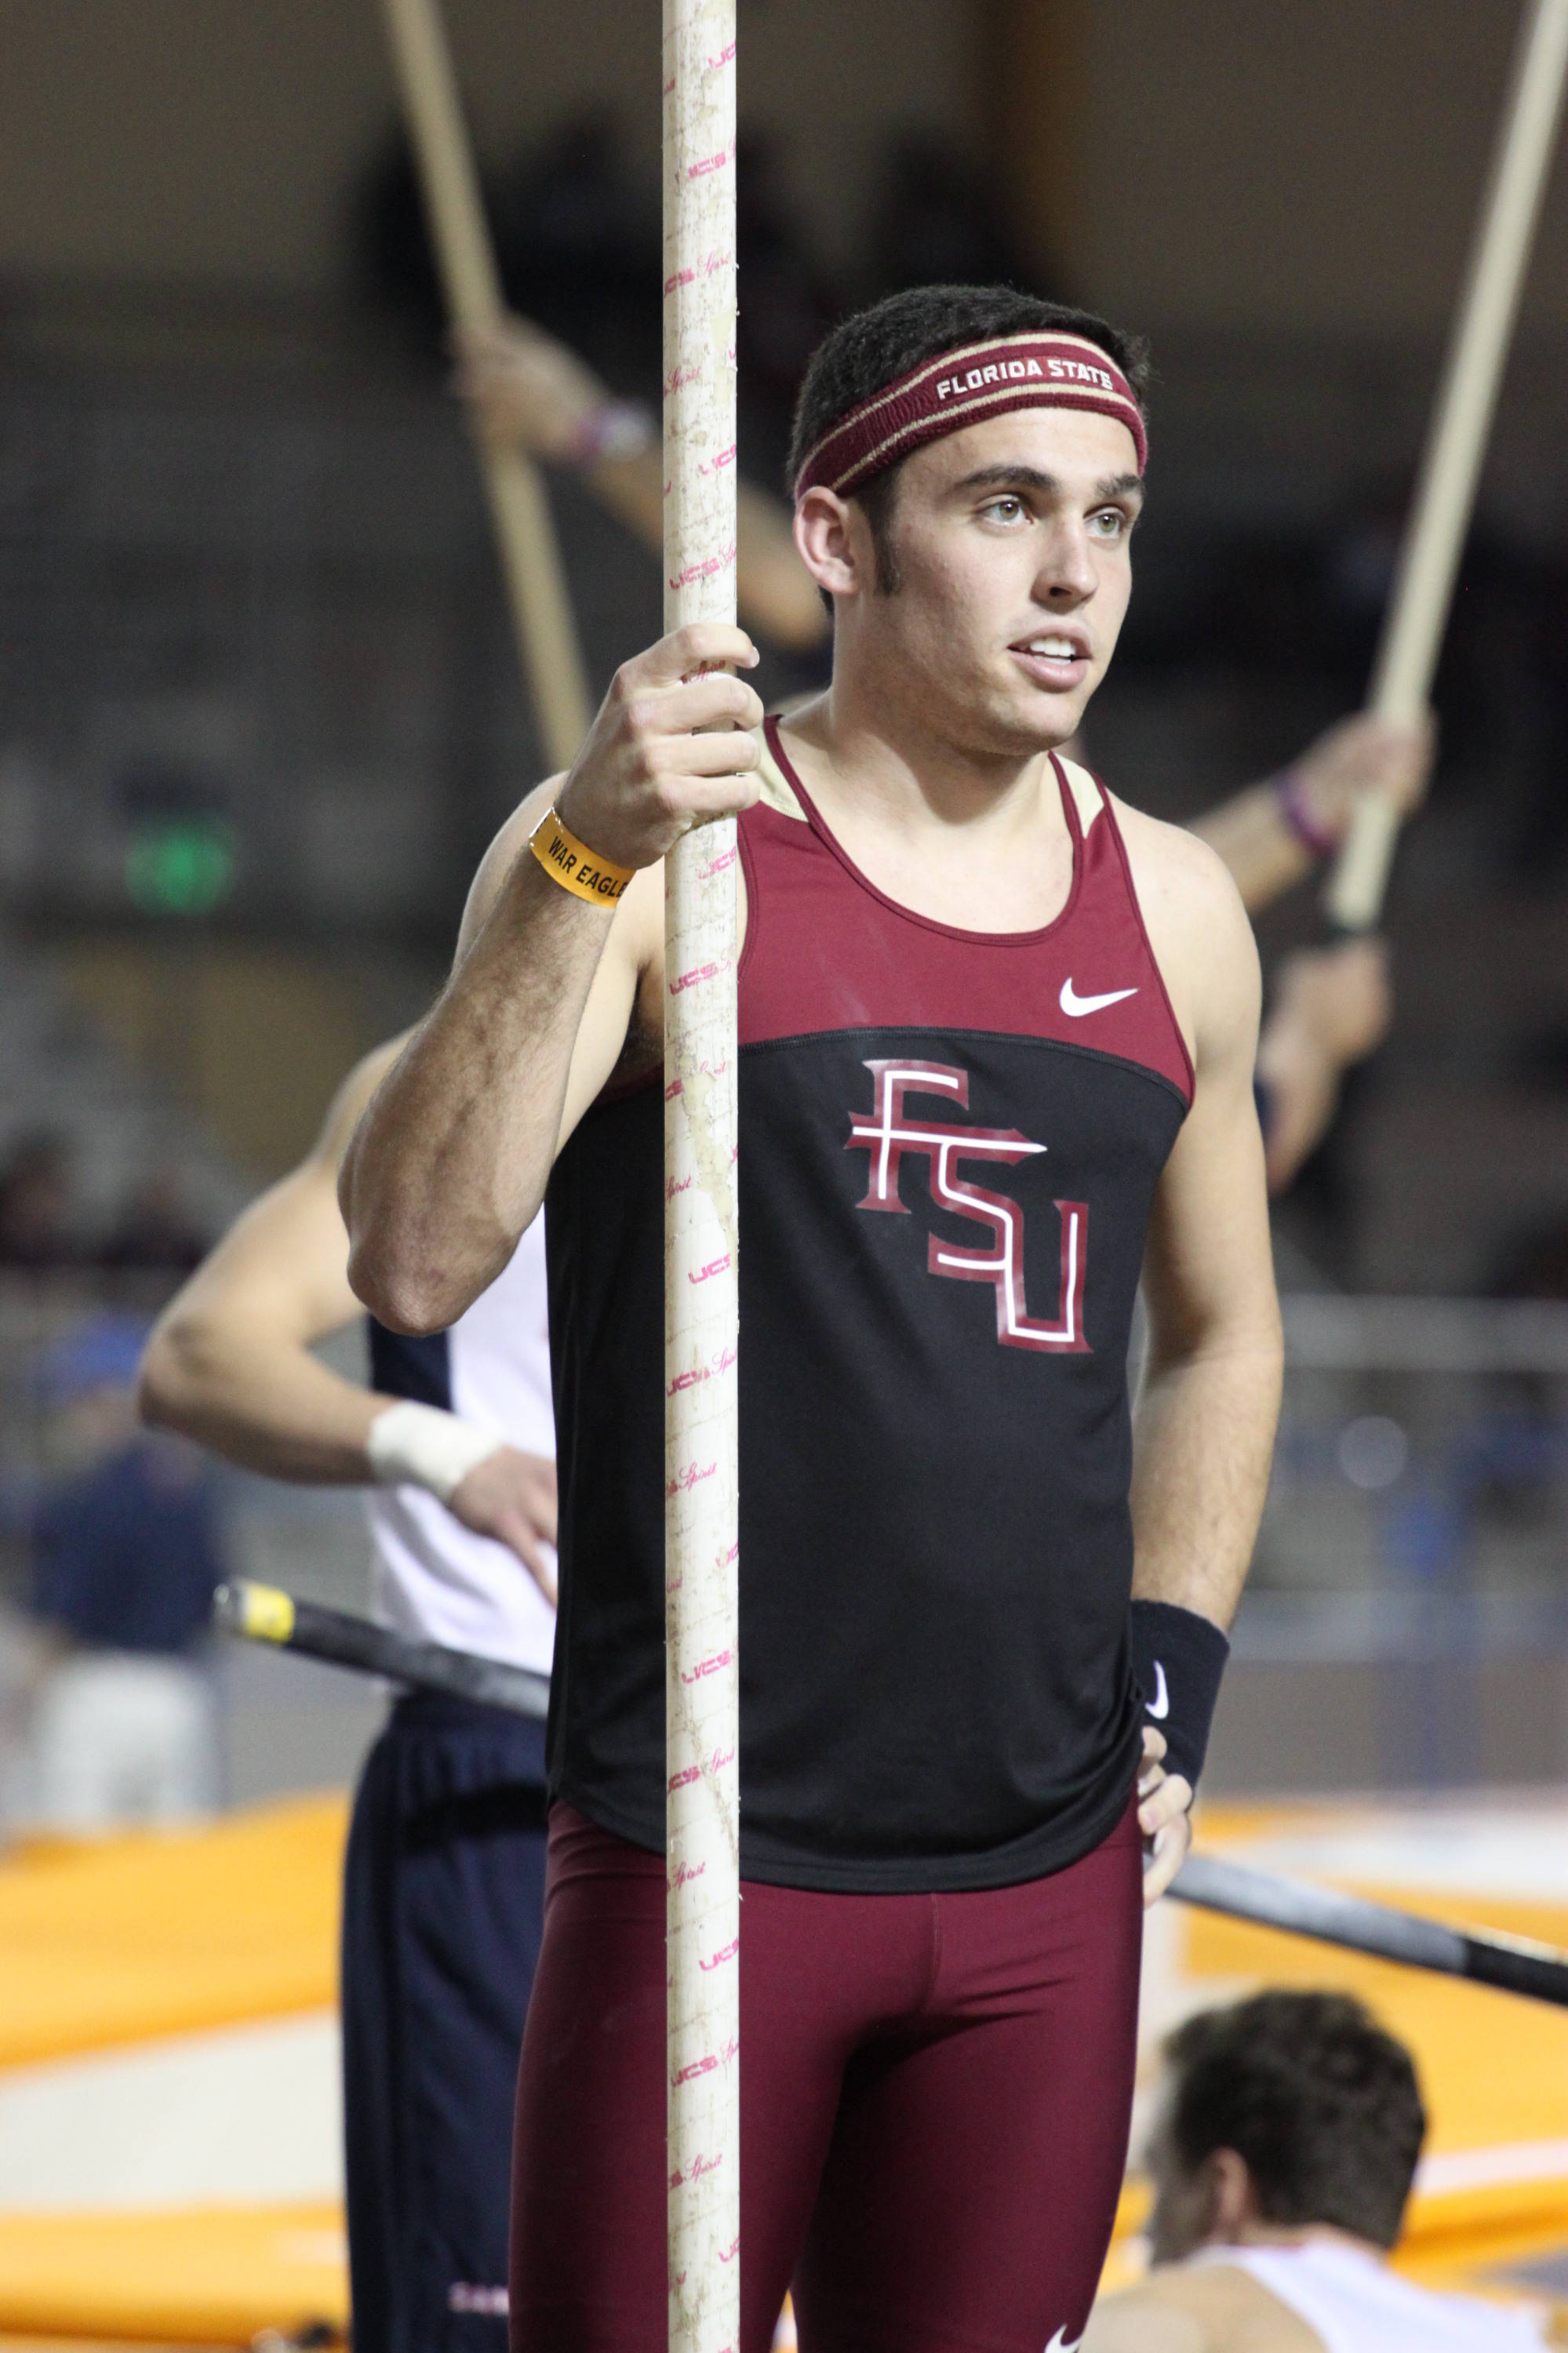 Pole vaulter John Kennedy posted a career-best vault of 4.75m (15-7).